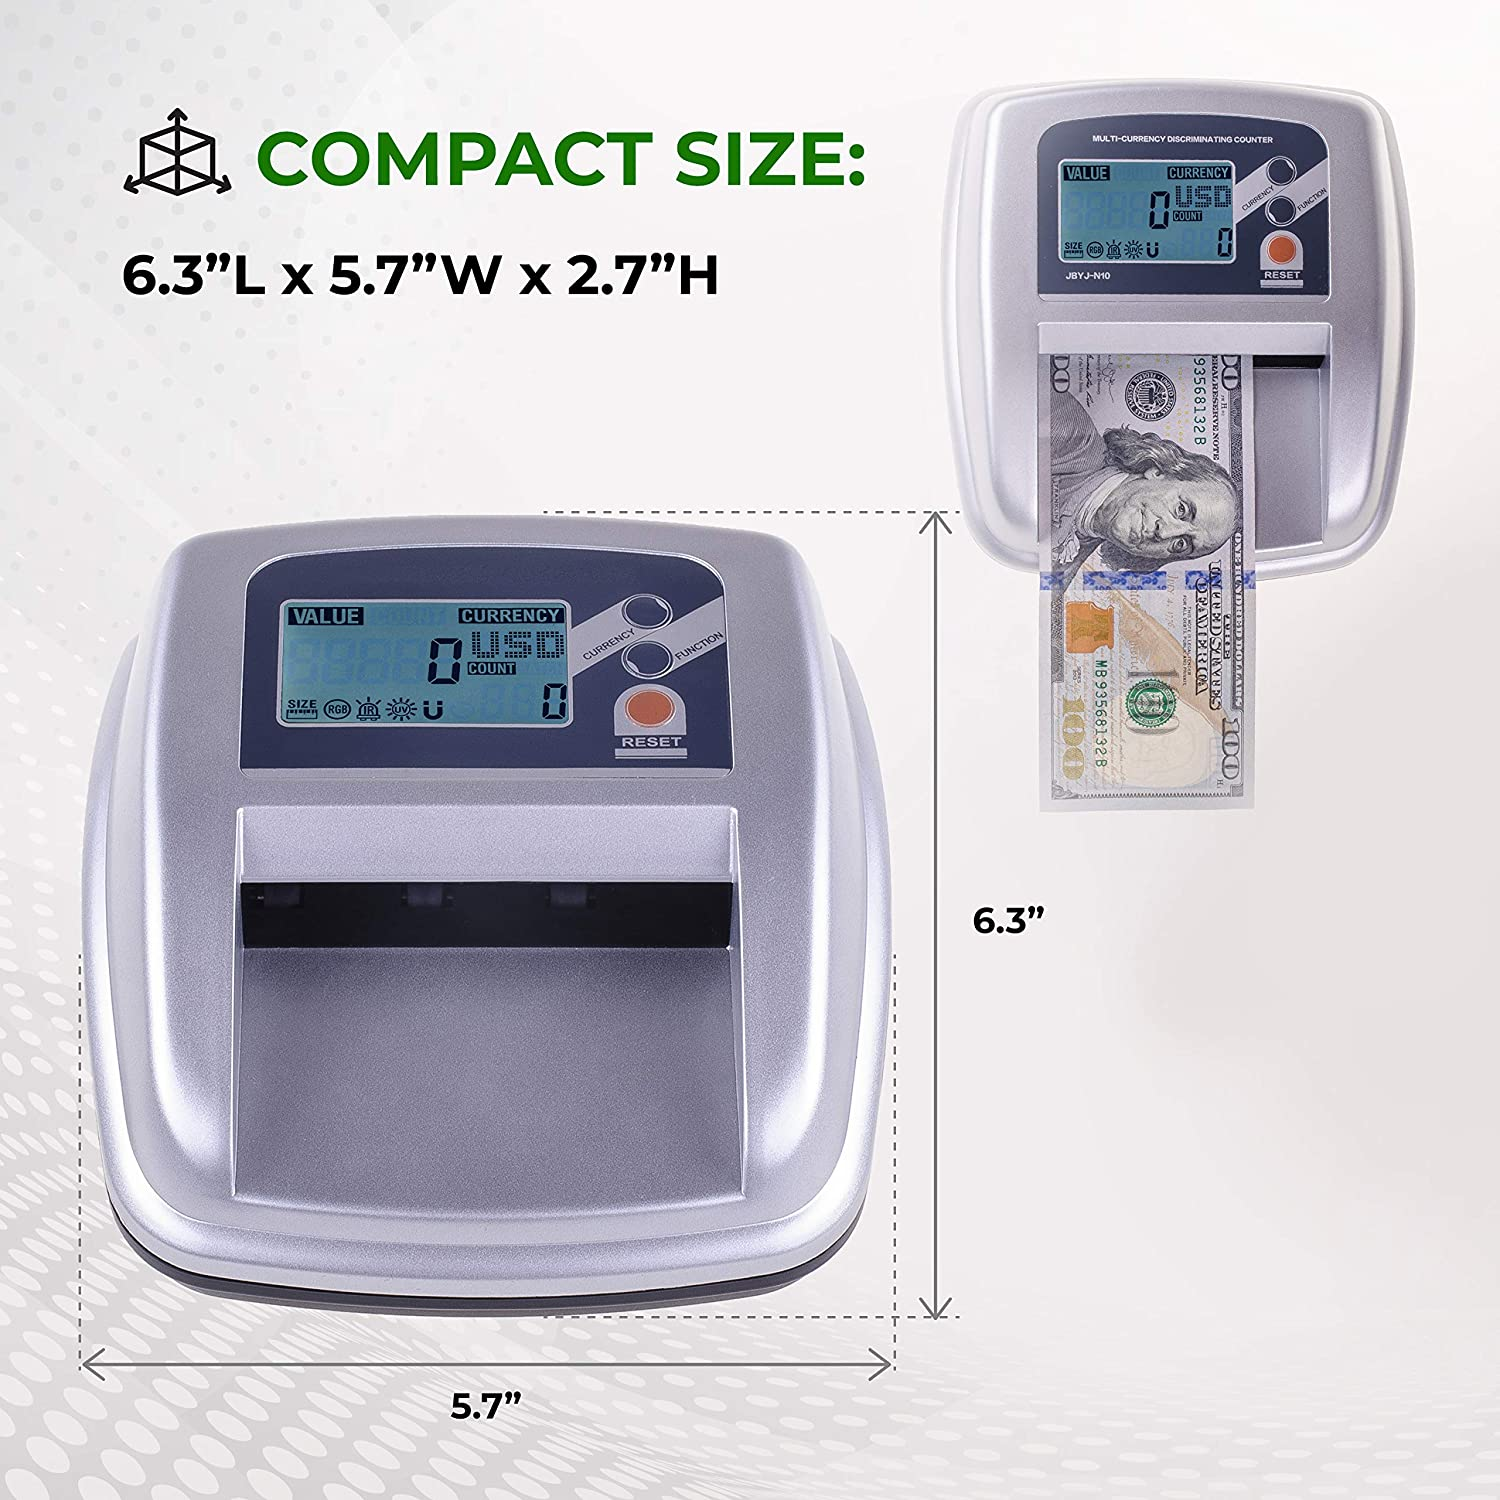 Amazon.com : New Counterfeit Bill Detector & Counter with MG/UV/IR/Size/MS Detection. : Office Products